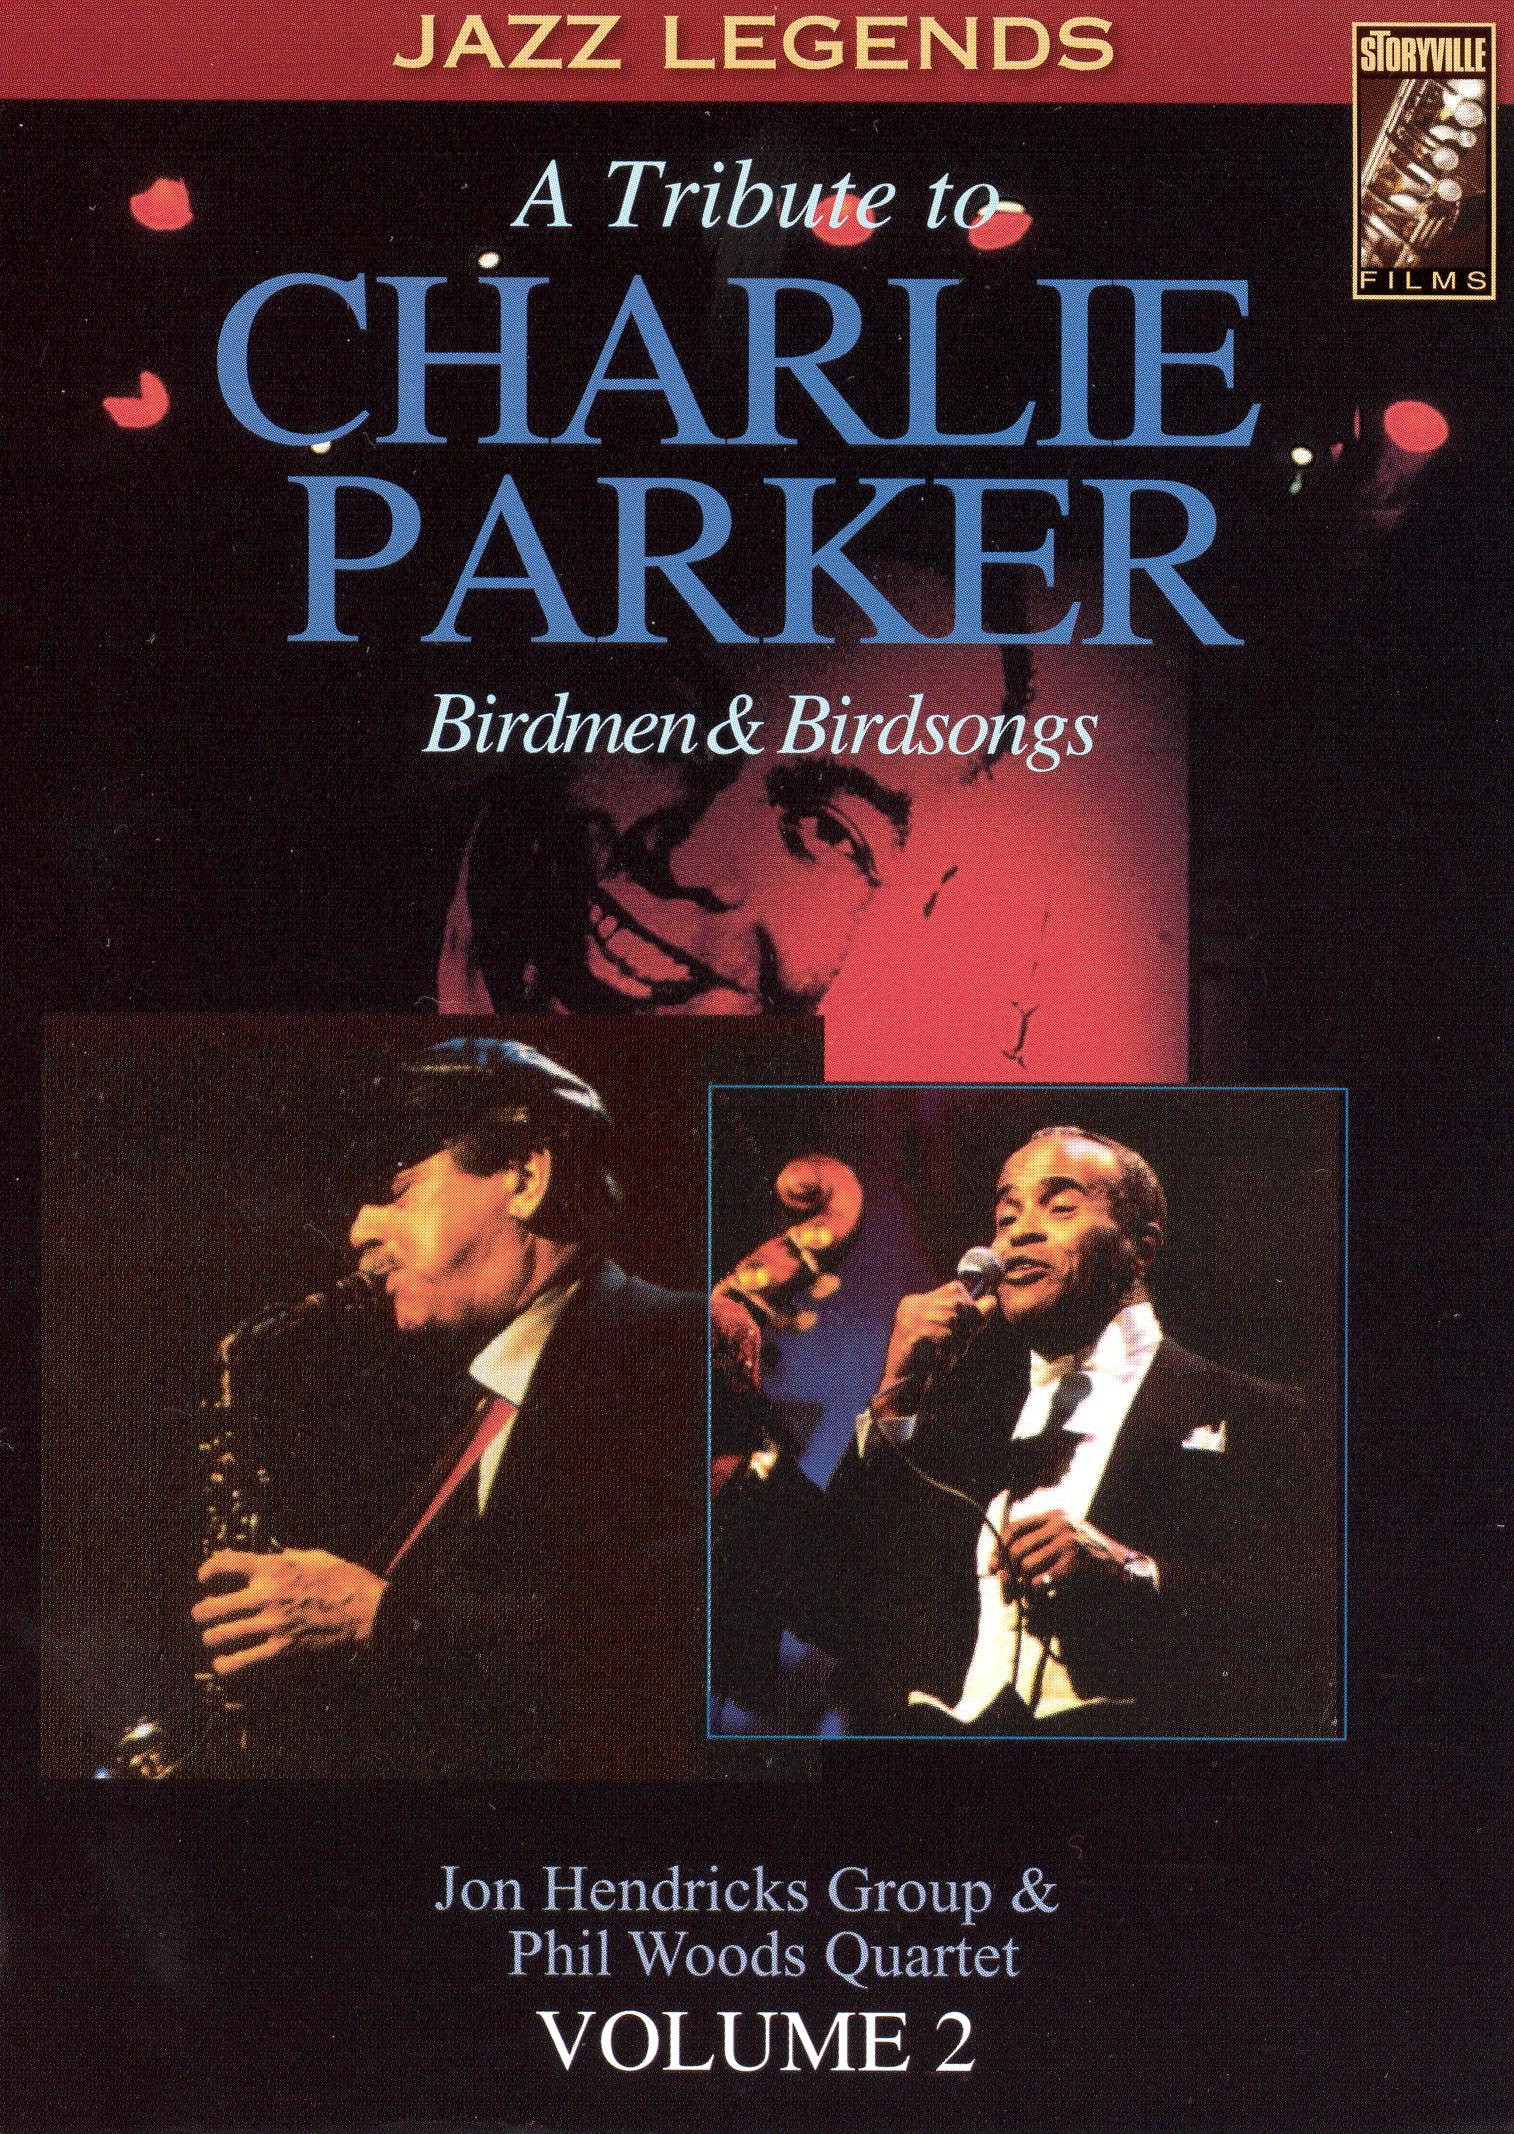 A Tribute to Charlie Parker, Vol. 2